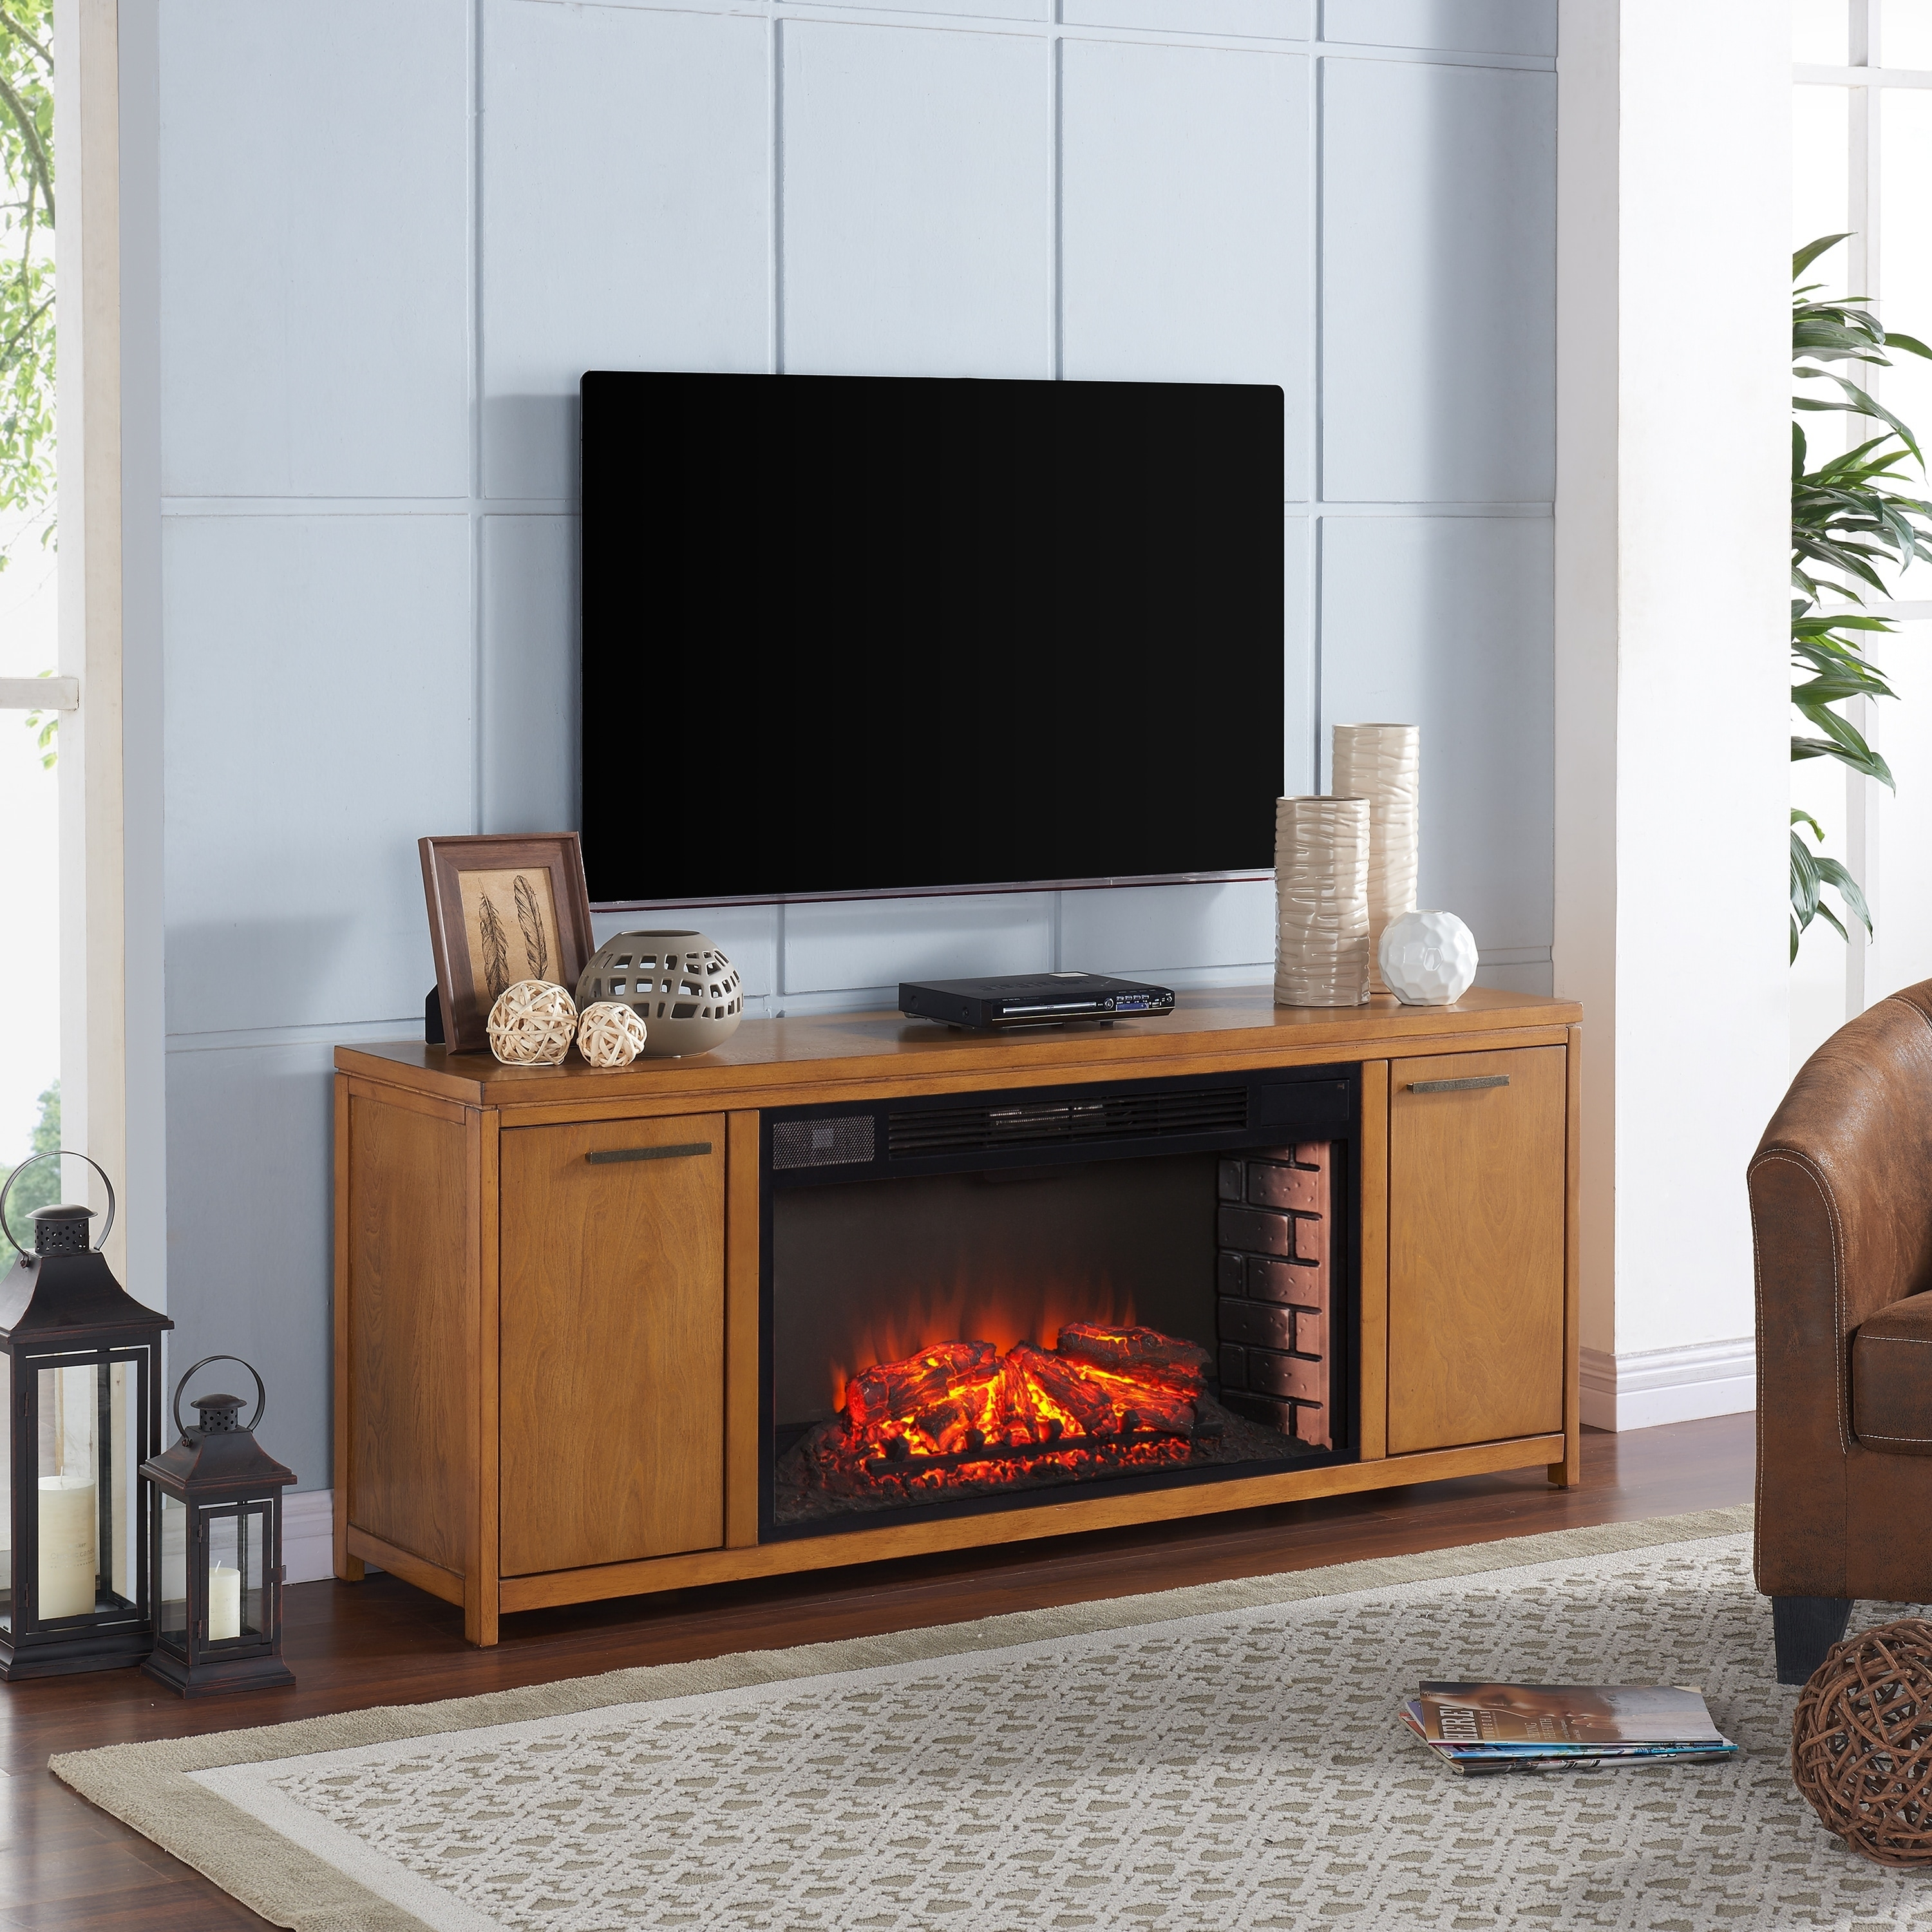 fireplace in media built build your electric units captivating with lovely glamorous entertainment center images wall